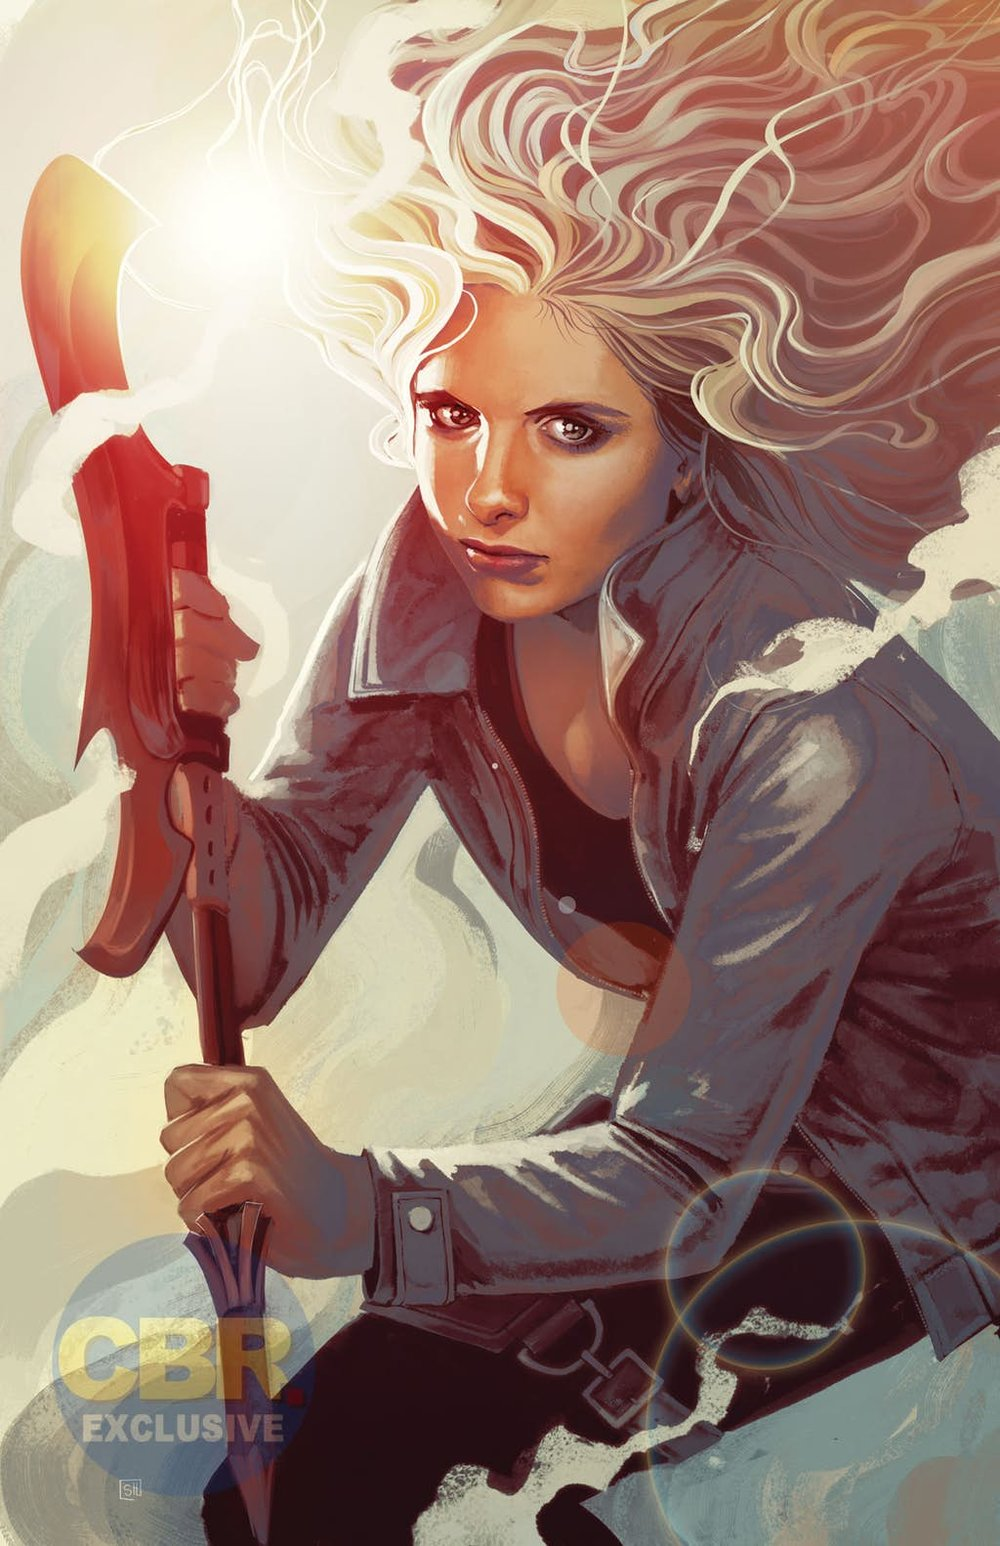 joss-whedon-returns-to-buffy-the-vampire-slayer-for-season-12-comic1